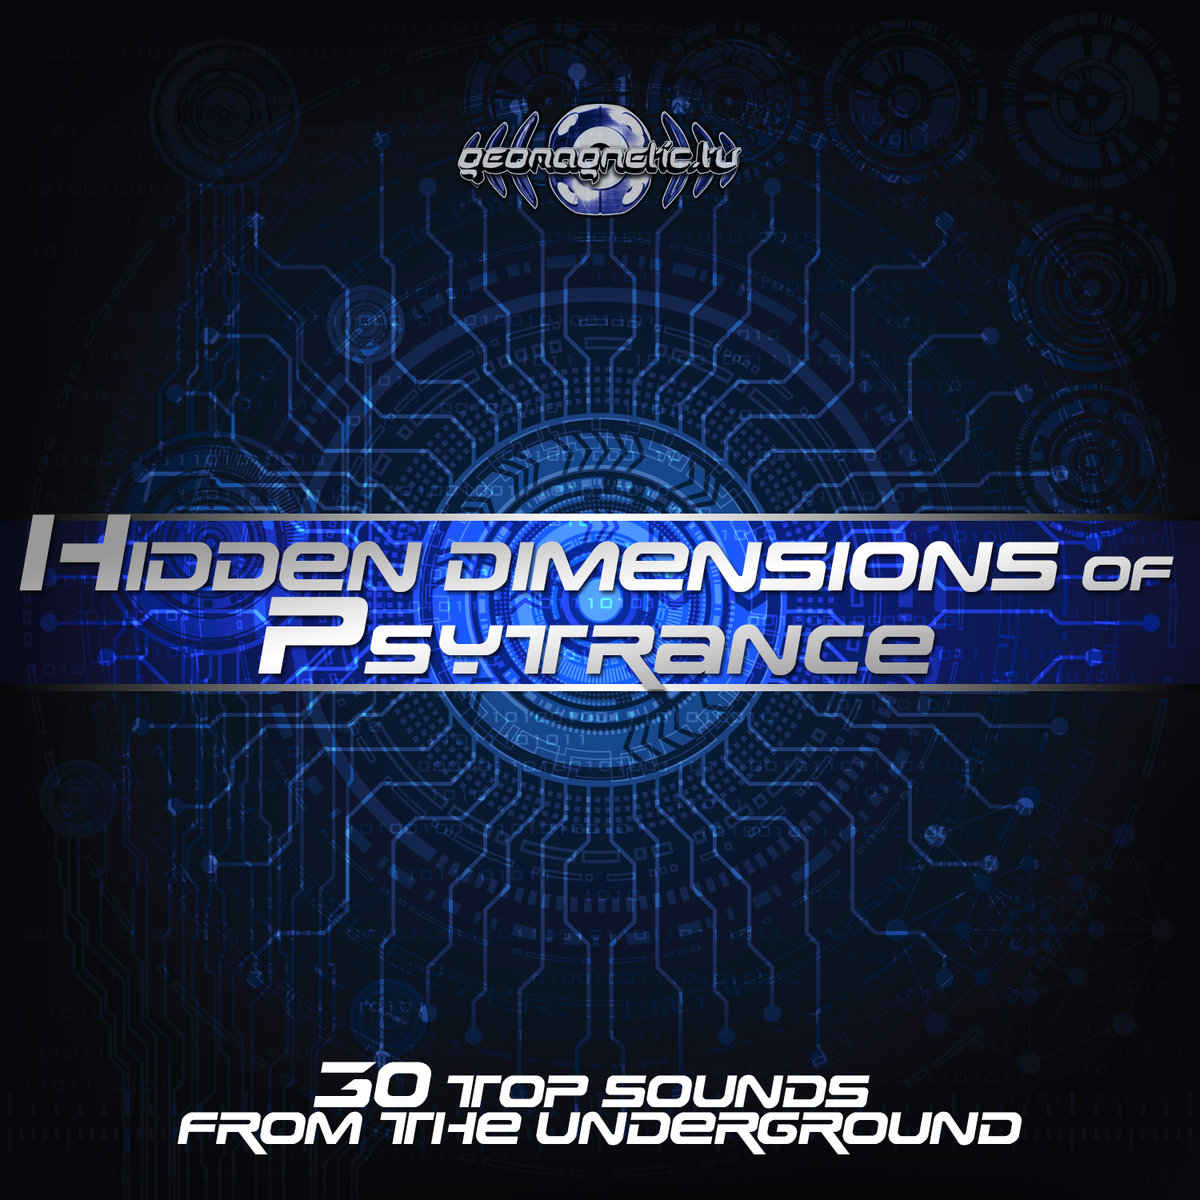 Triscele - Infrantik @ 'Various Artists - Hidden Dimensions of Psytrance (30 Top Sounds From The Underground)' album (electronic, goa)